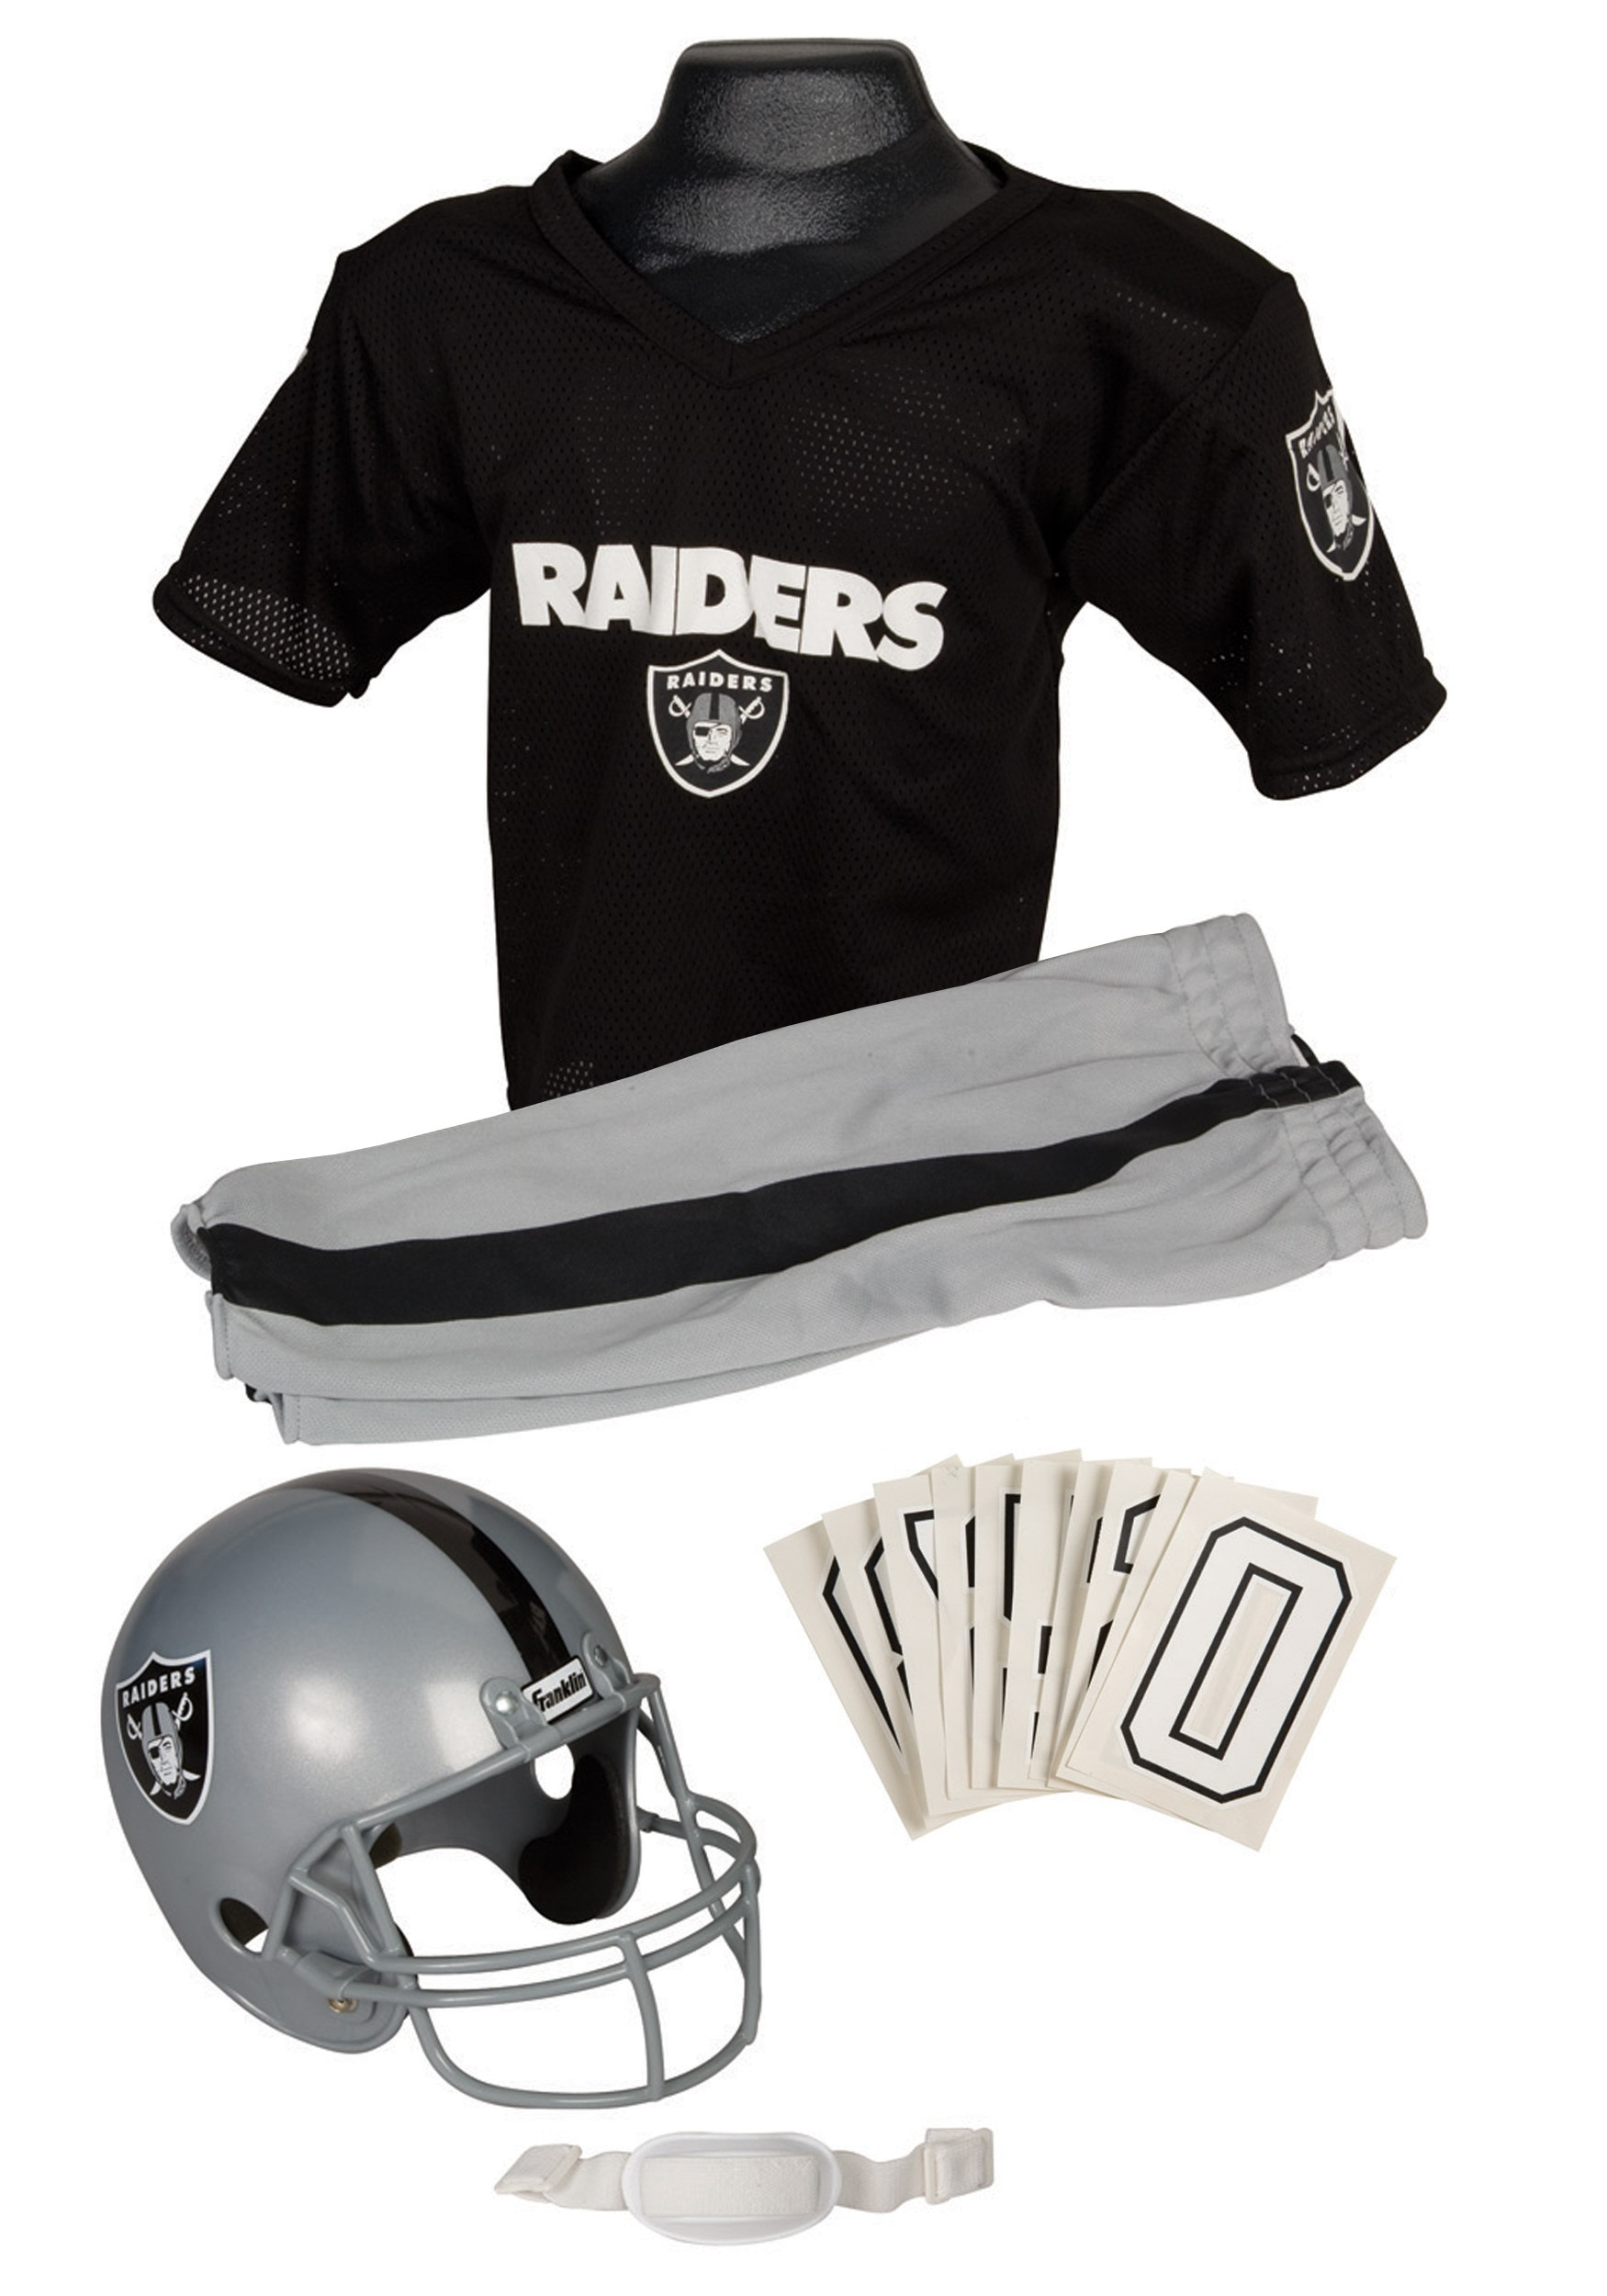 raiders football jersey